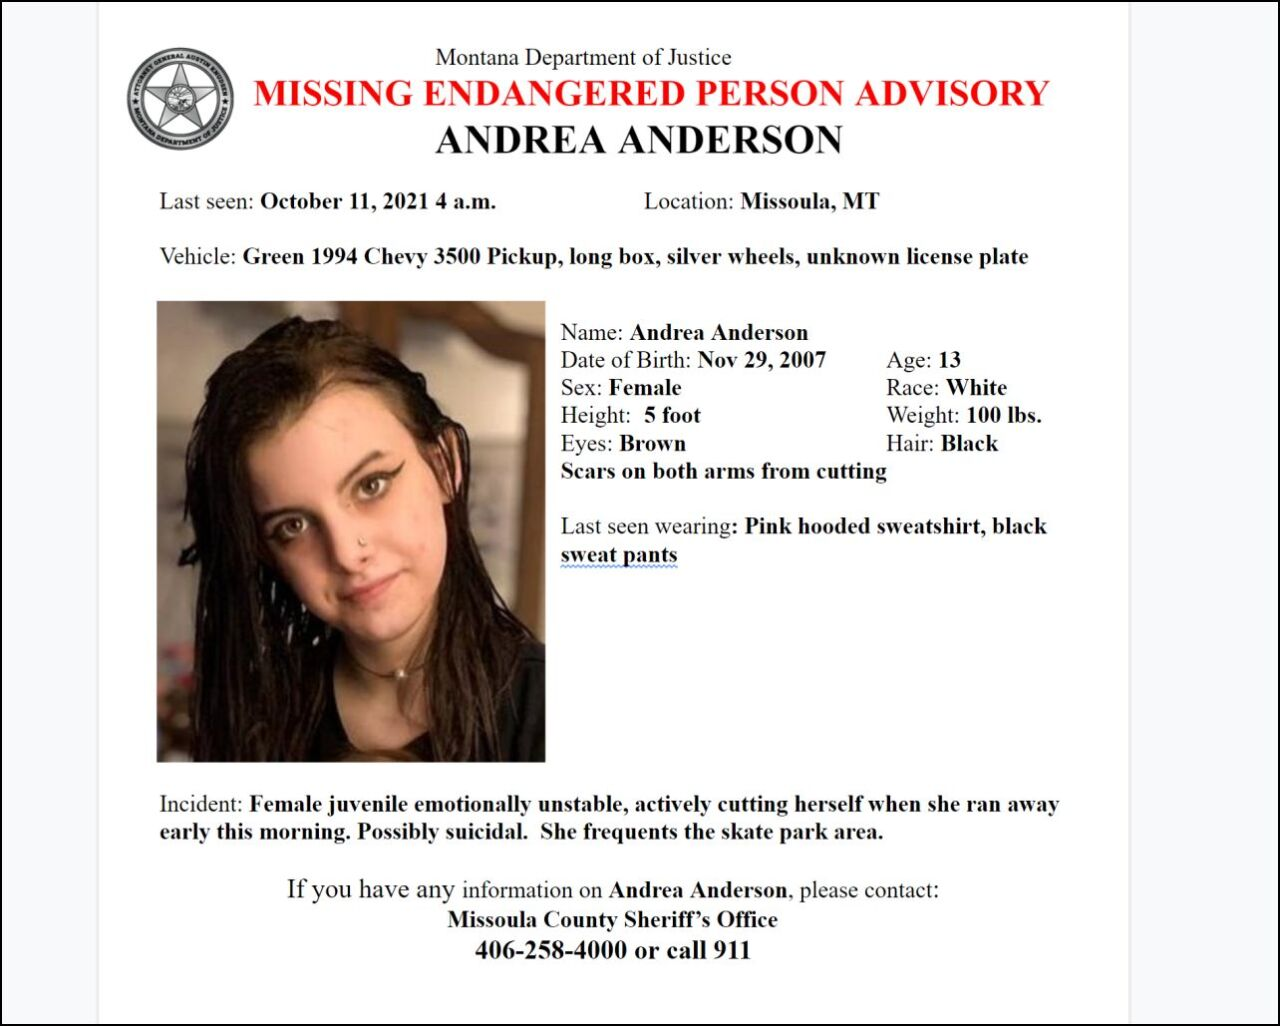 Missing-Endangered Person Advisory for 13-year old Andrea Anderson